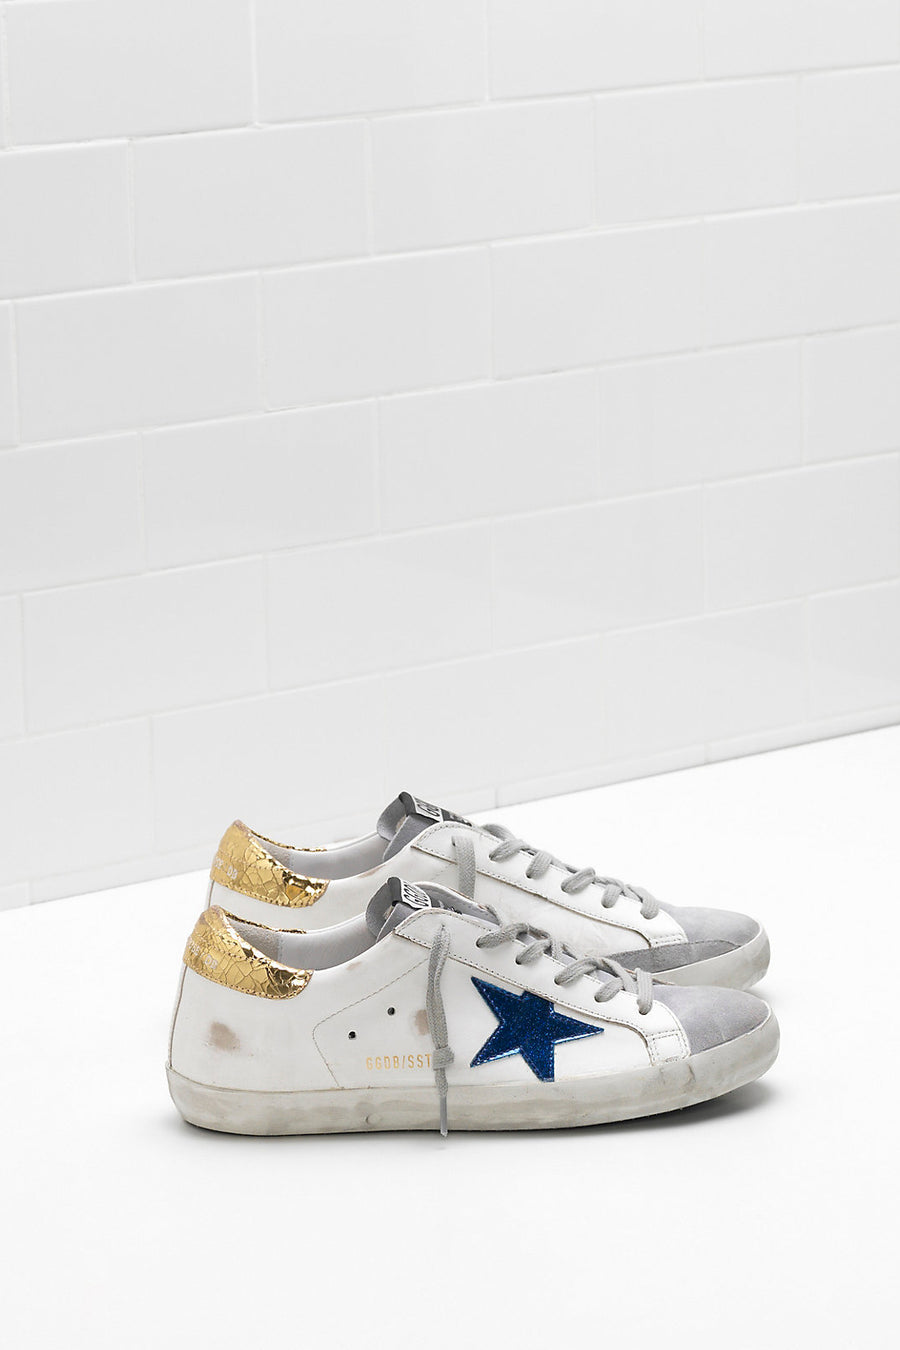 Superstar - White Leather Gold Crack - Pavilion